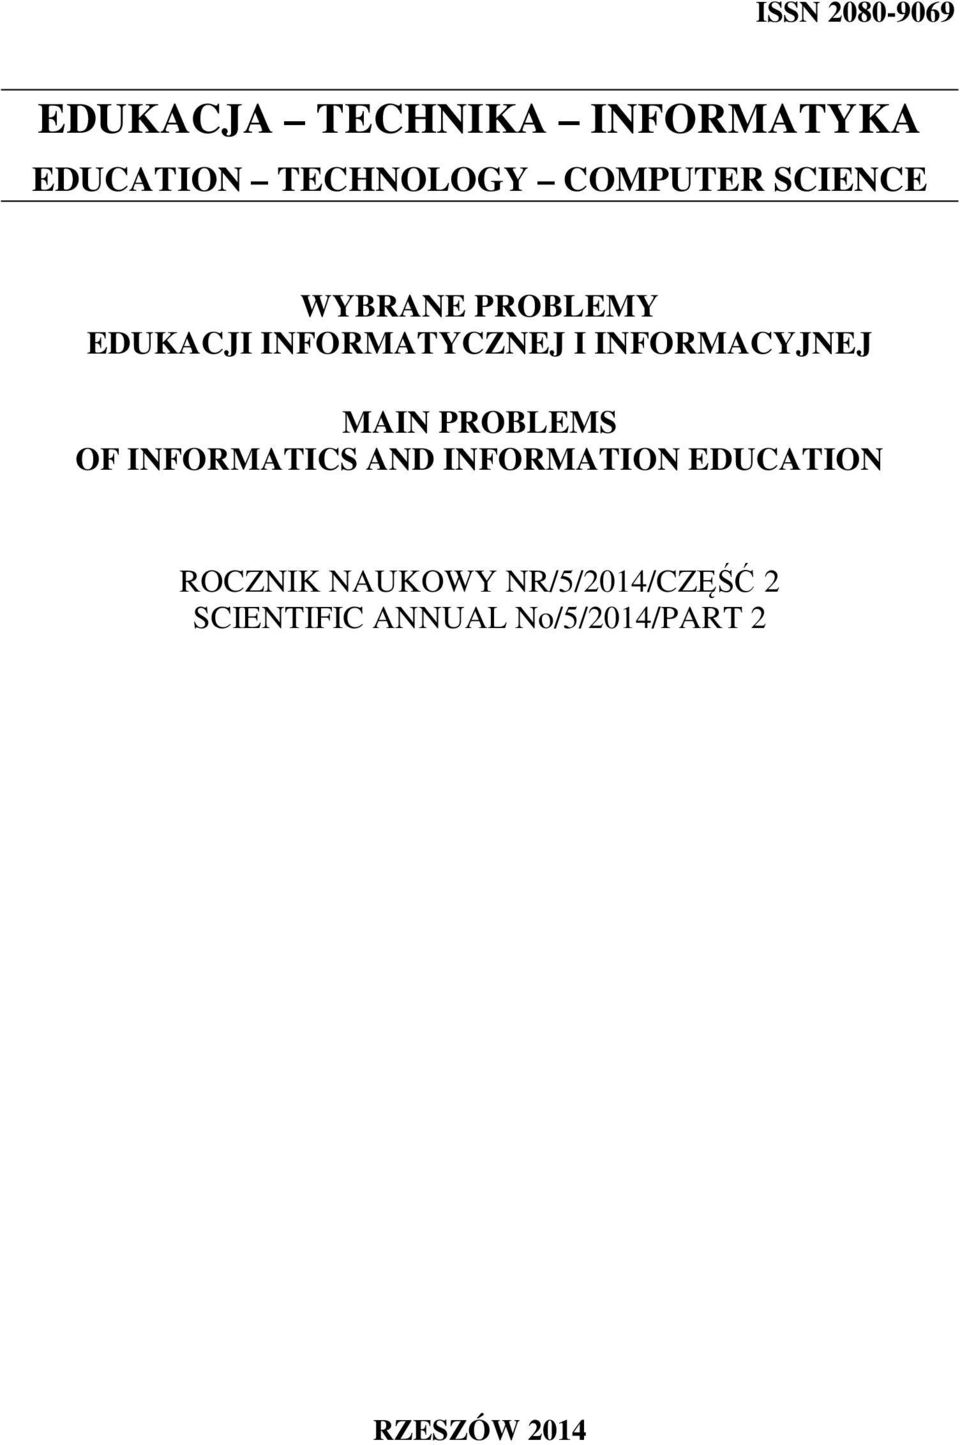 INFORMACYJNEJ MAIN PROBLEMS OF INFORMATICS AND INFORMATION EDUCATION